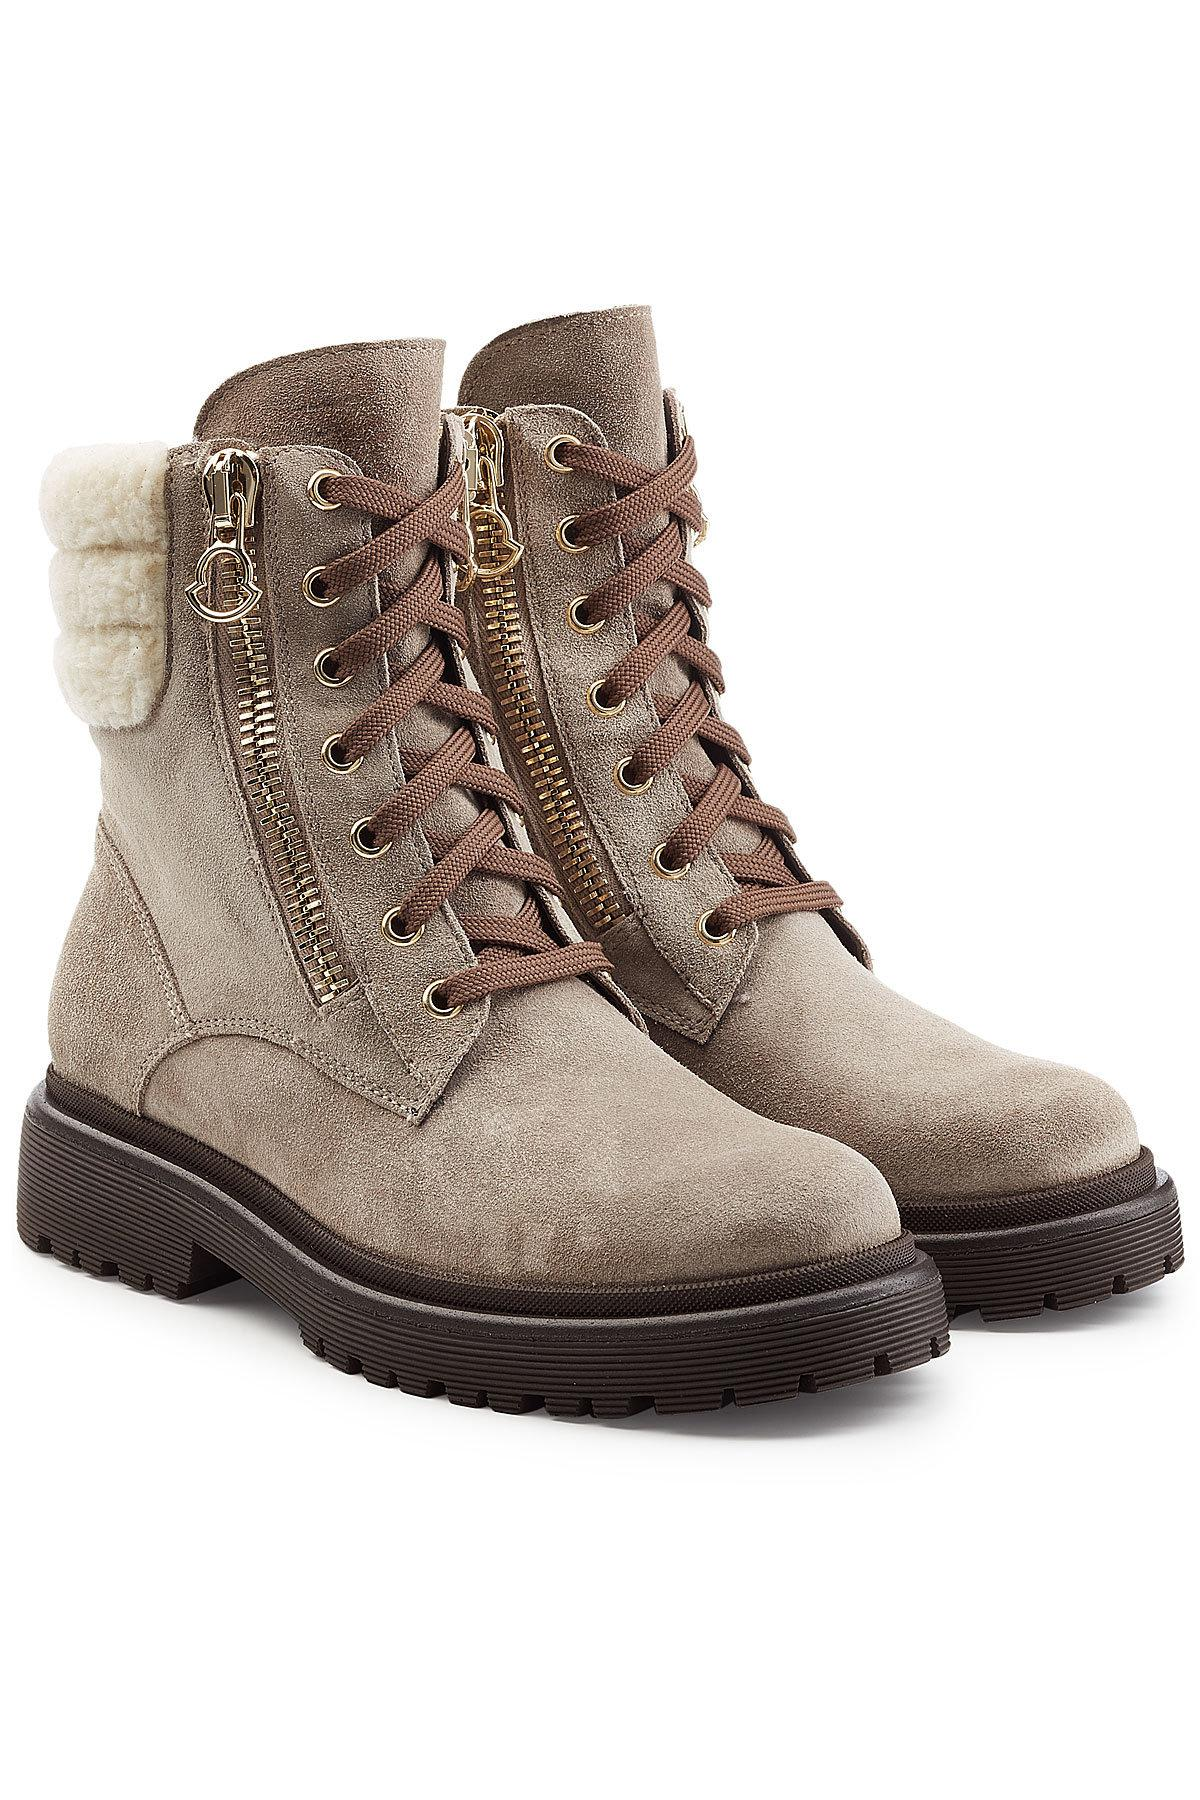 Moncler. Women's Brown Shearling Ankle Boots